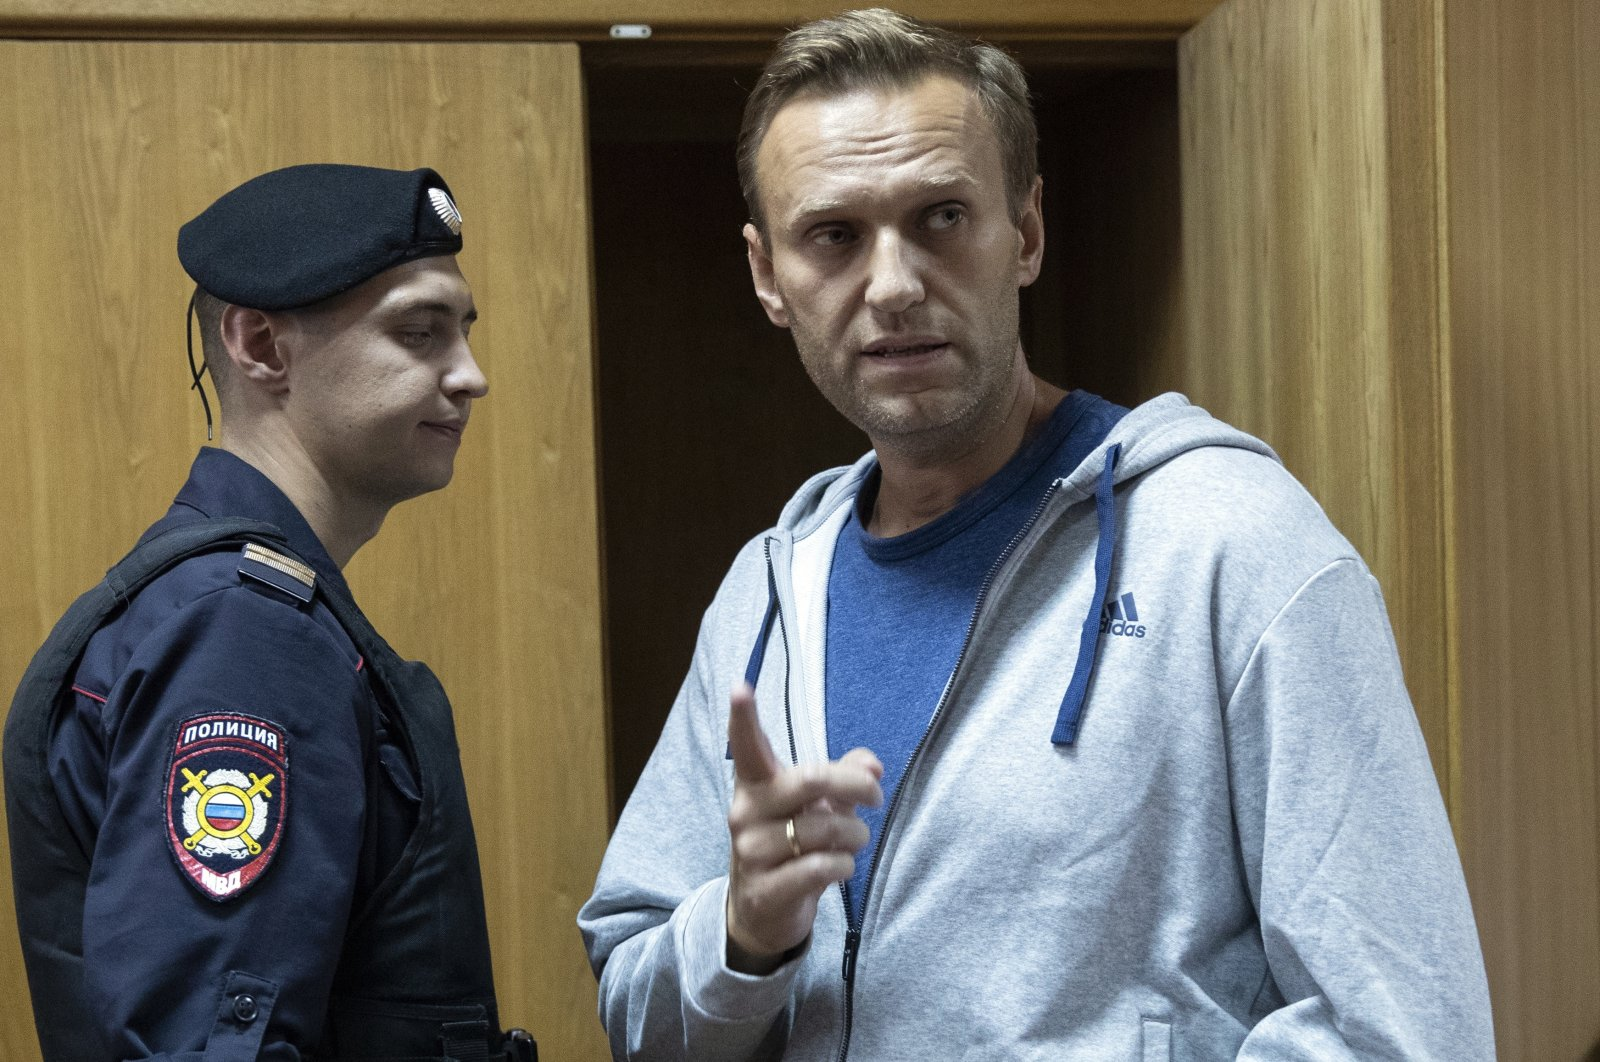 Russian opposition leader Alexei Navalny gestures while speaking in a courtroom in Moscow, Russia, Aug. 27, 2018. (AP Photo)